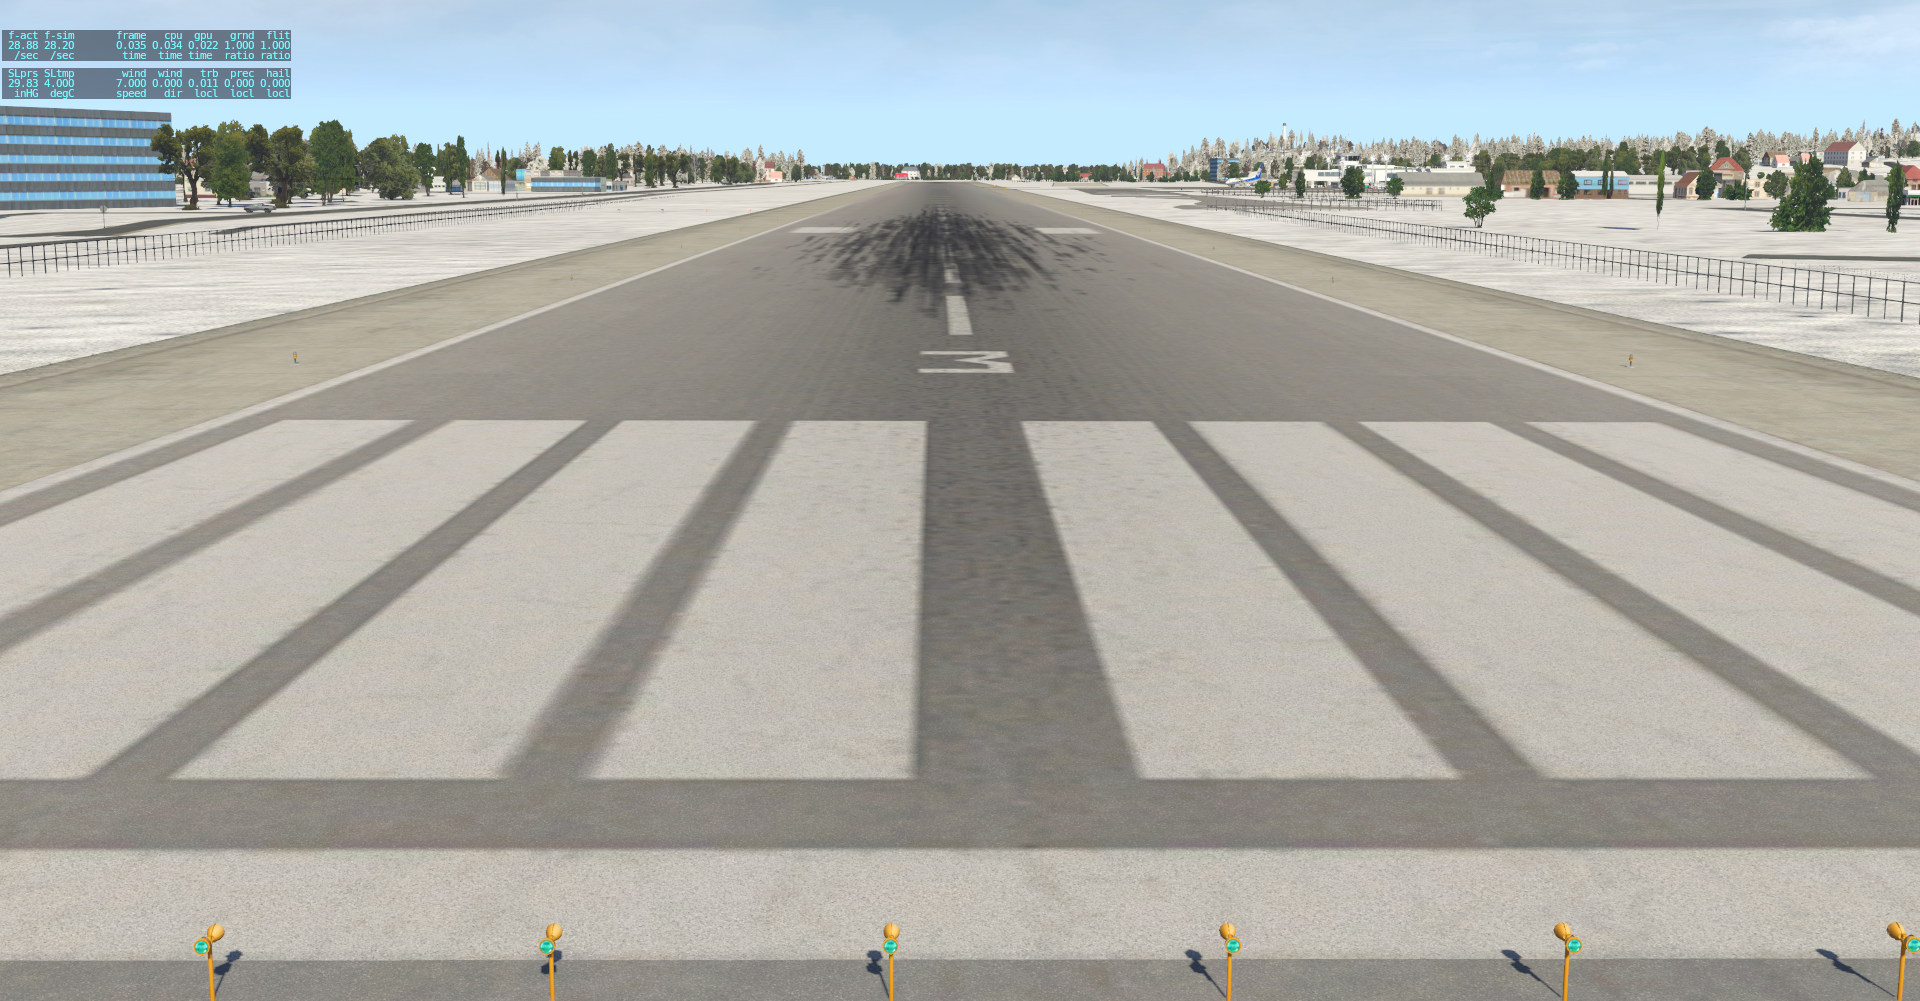 Airport Environment HD 0 9 by MisterX6 : HOTEL INDIA の blog